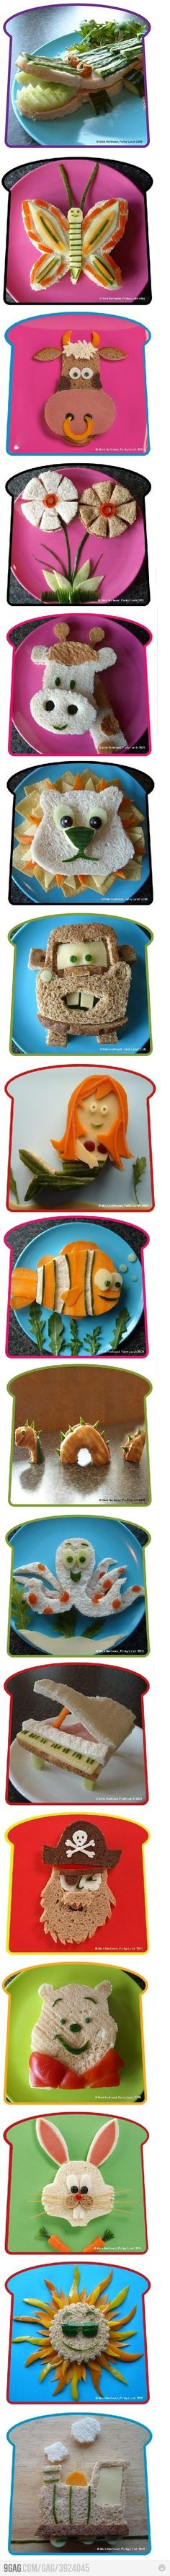 Cute sandwiches!